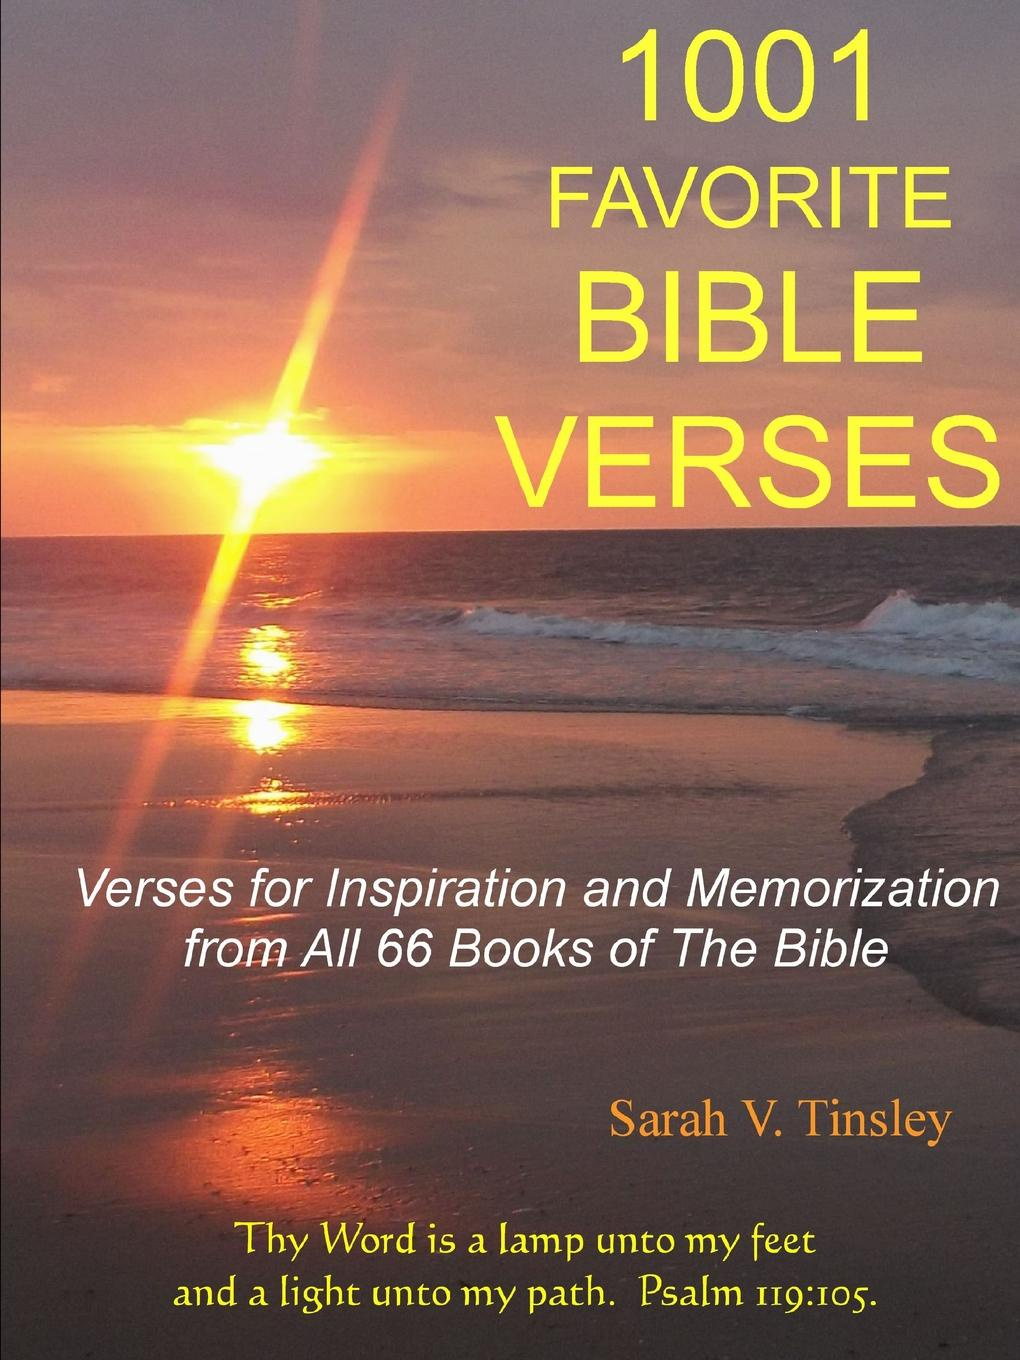 Sarah Tinsley 1001 FAVORITE BIBLE VERSES, Verses for Inspiration and Memorization from All 66 Books of The Bible robert e van voorst commonly misunderstood verses of the bible